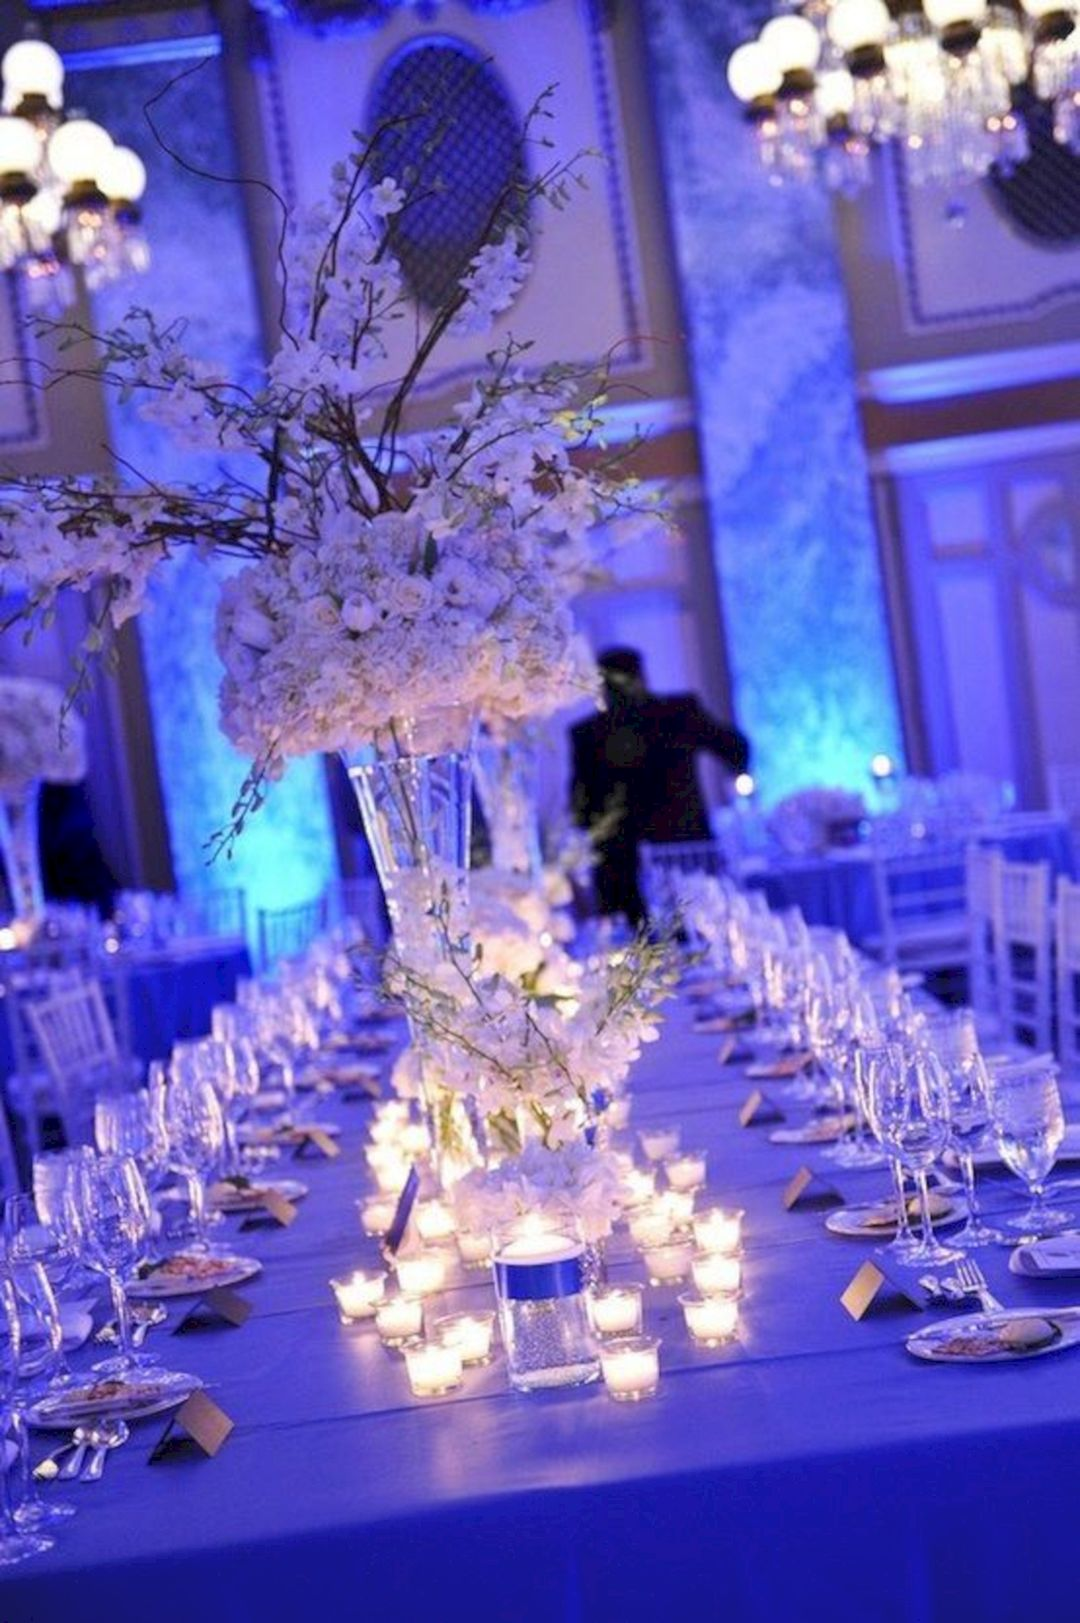 tall white flower winter wedding centerpieces with blue lighting